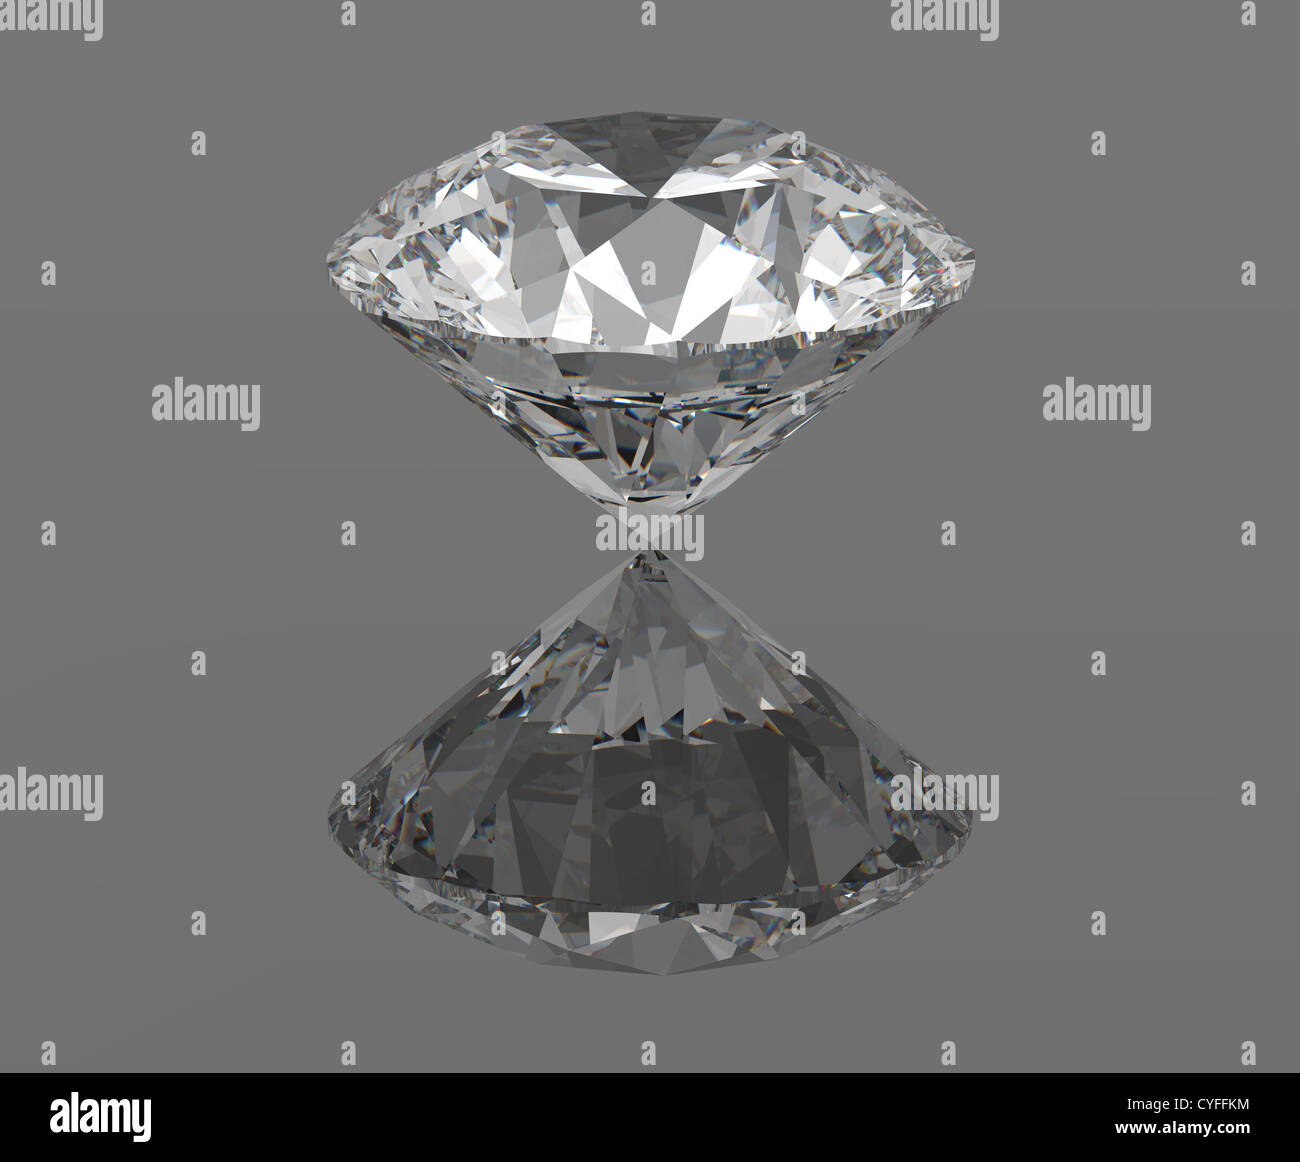 Diamond, gemstone isolated with reflections, 3d render - Stock Image